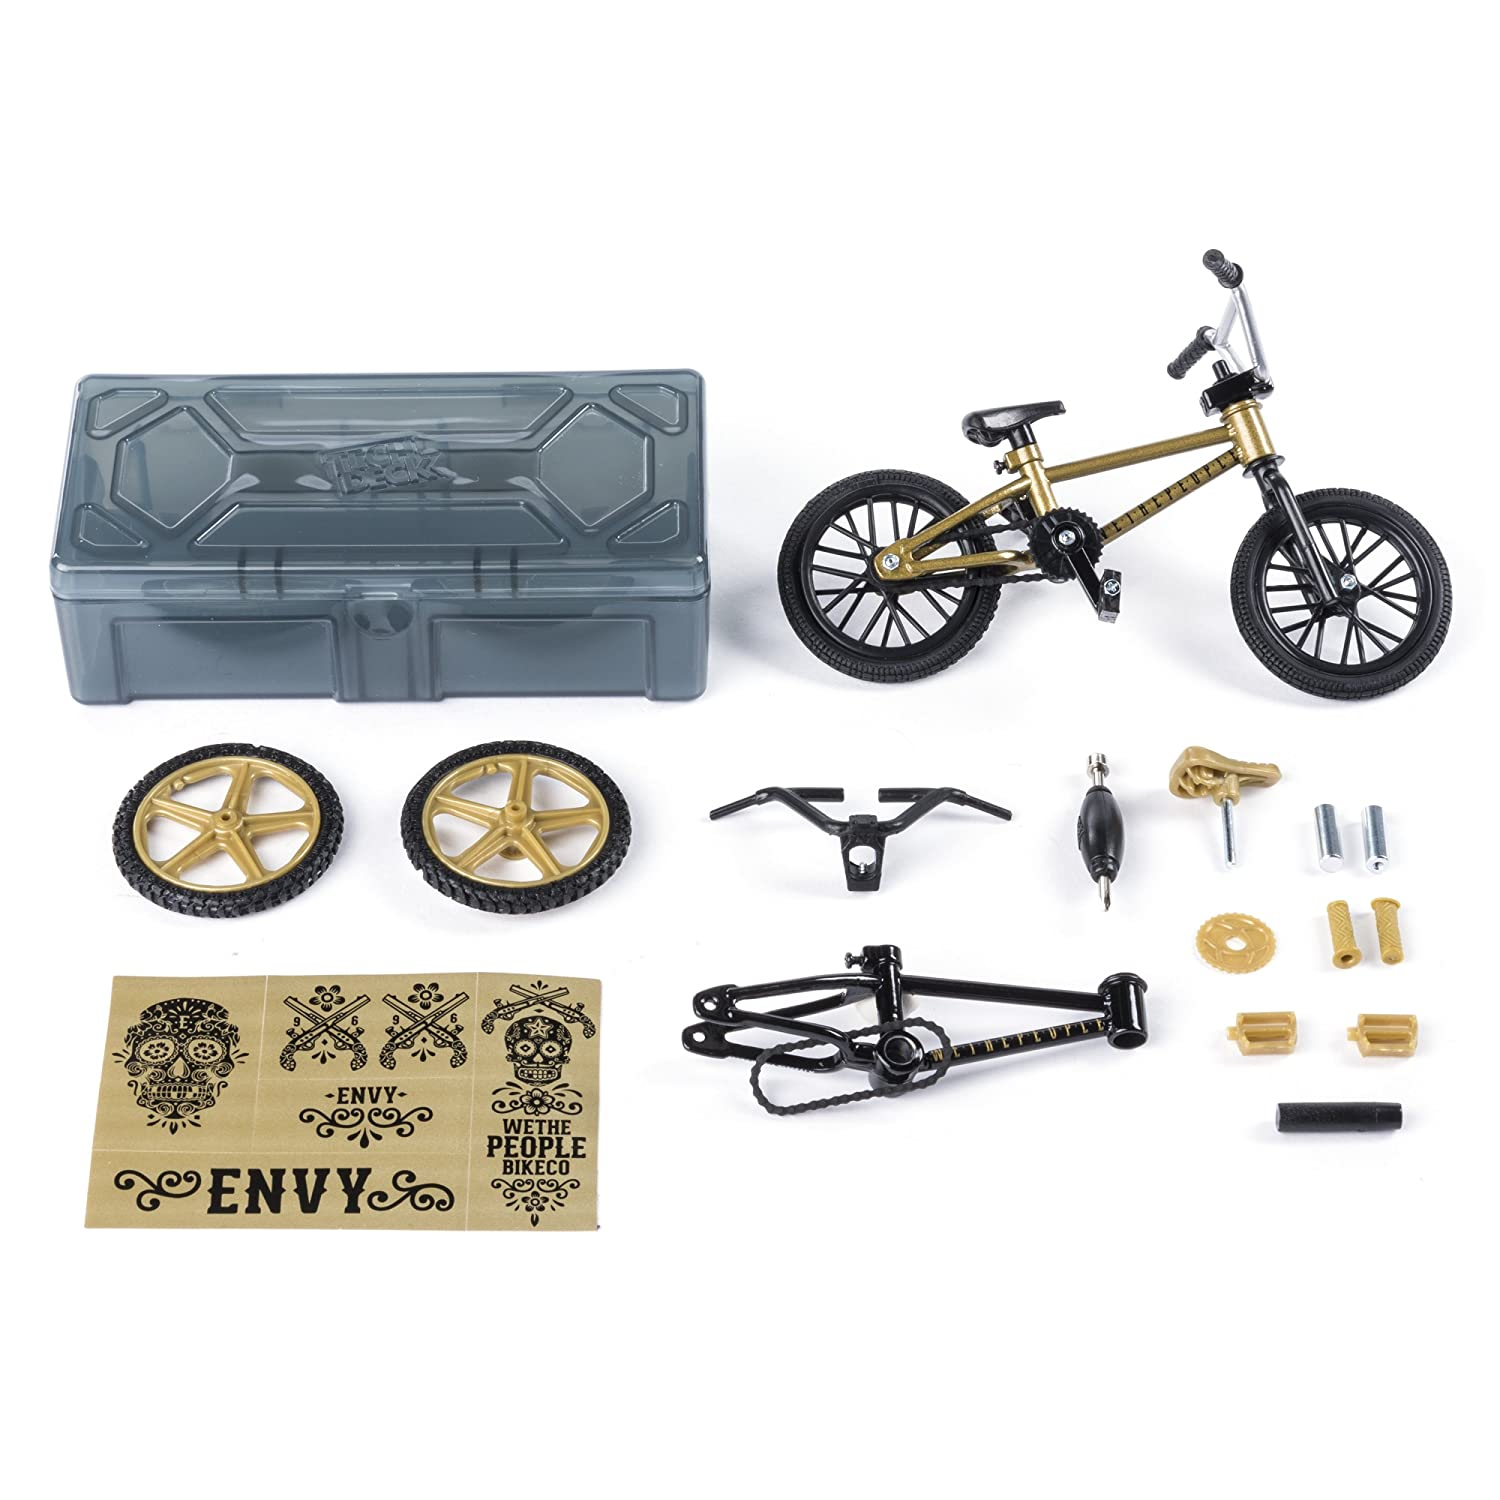 Tech Deck – BMX Bike Shop with Accessories and Storage Container – WeThePeople Bikes – Gold Black